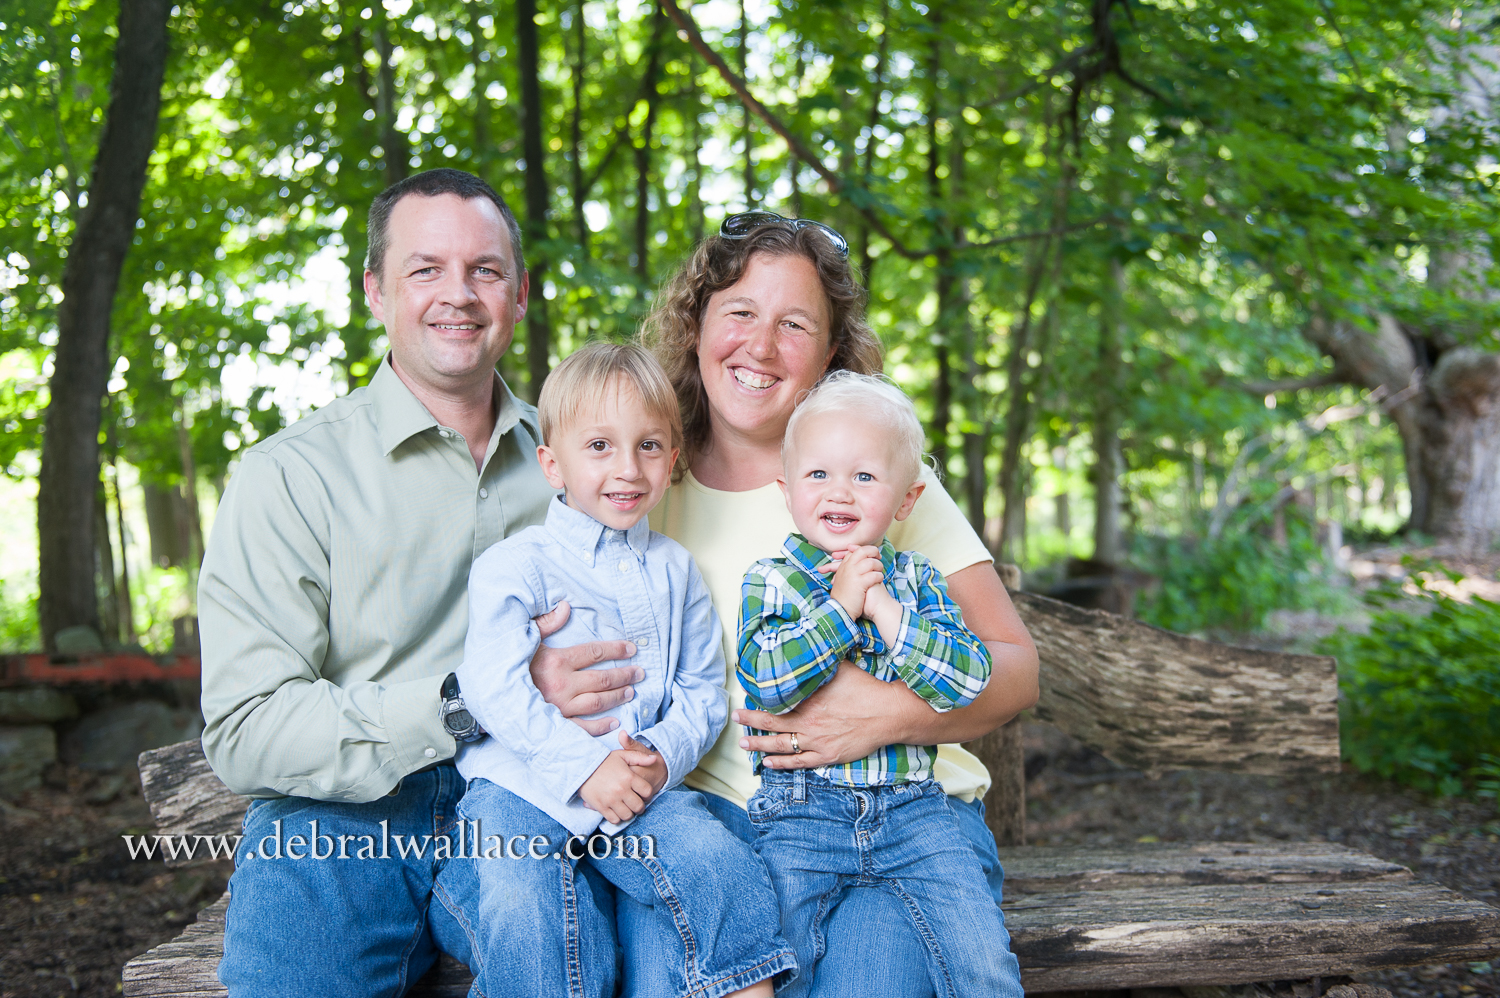 Mendon ponds sibling photography-8384